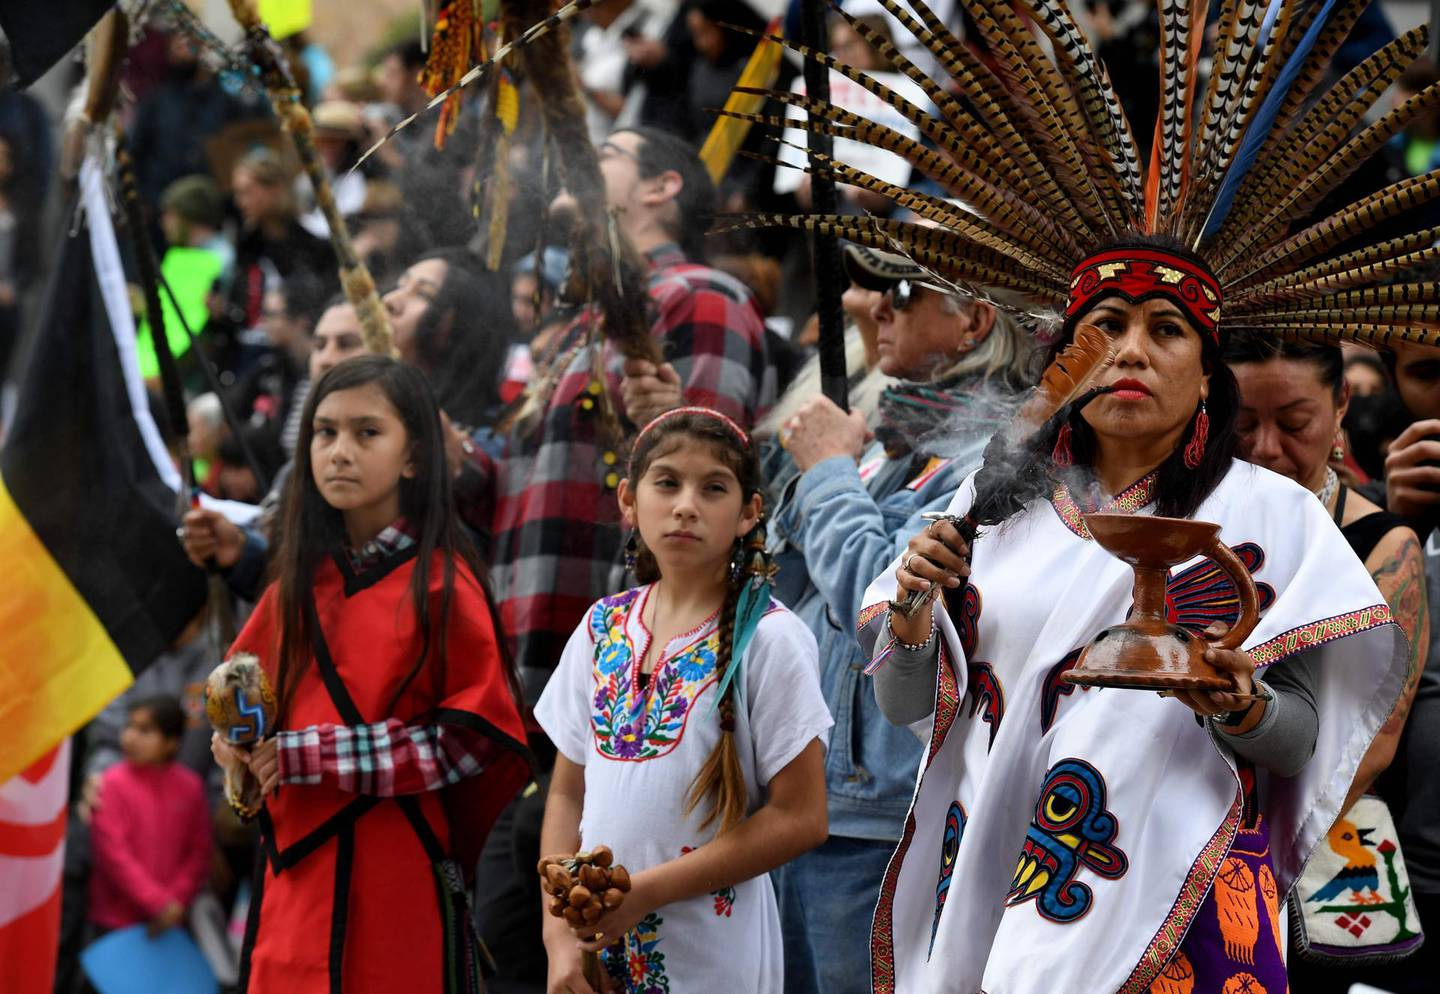 (FILES) In this file photo Native Americans lead demonstrators as they march to the Federal Building in protest against President Donald Trump's executive order fast-tracking the Keystone XL and Dakota Access oil pipelines, in Los Angeles, California on February 5, 2017. President-elect Joe Biden plans to scrap the permit for the controversial Keystone XL oil pipeline between Canada and the US, two Canadian broadcasters said on January 17, 2021. CBC and CTV cited sources and notes from Biden's transition team that indicate he will rescind the permit via executive order following his inauguration on January 20, 2021. / AFP / Mark RALSTON